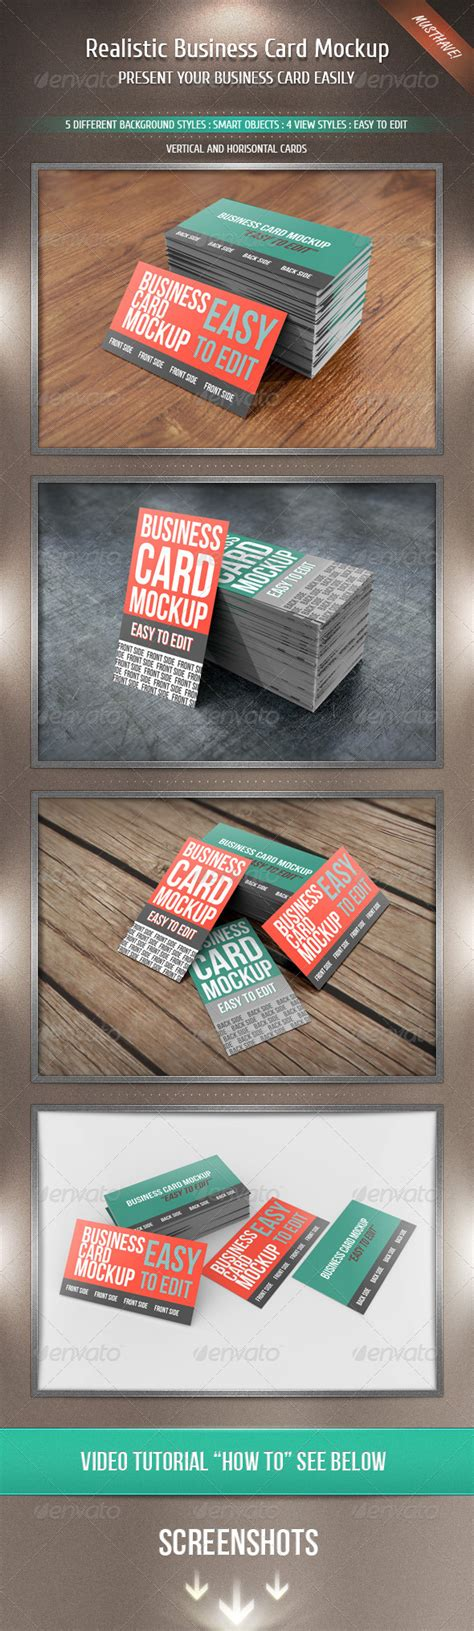 3 realistic business cards mockup templates realistic business card mockup by kotulsky graphicriver